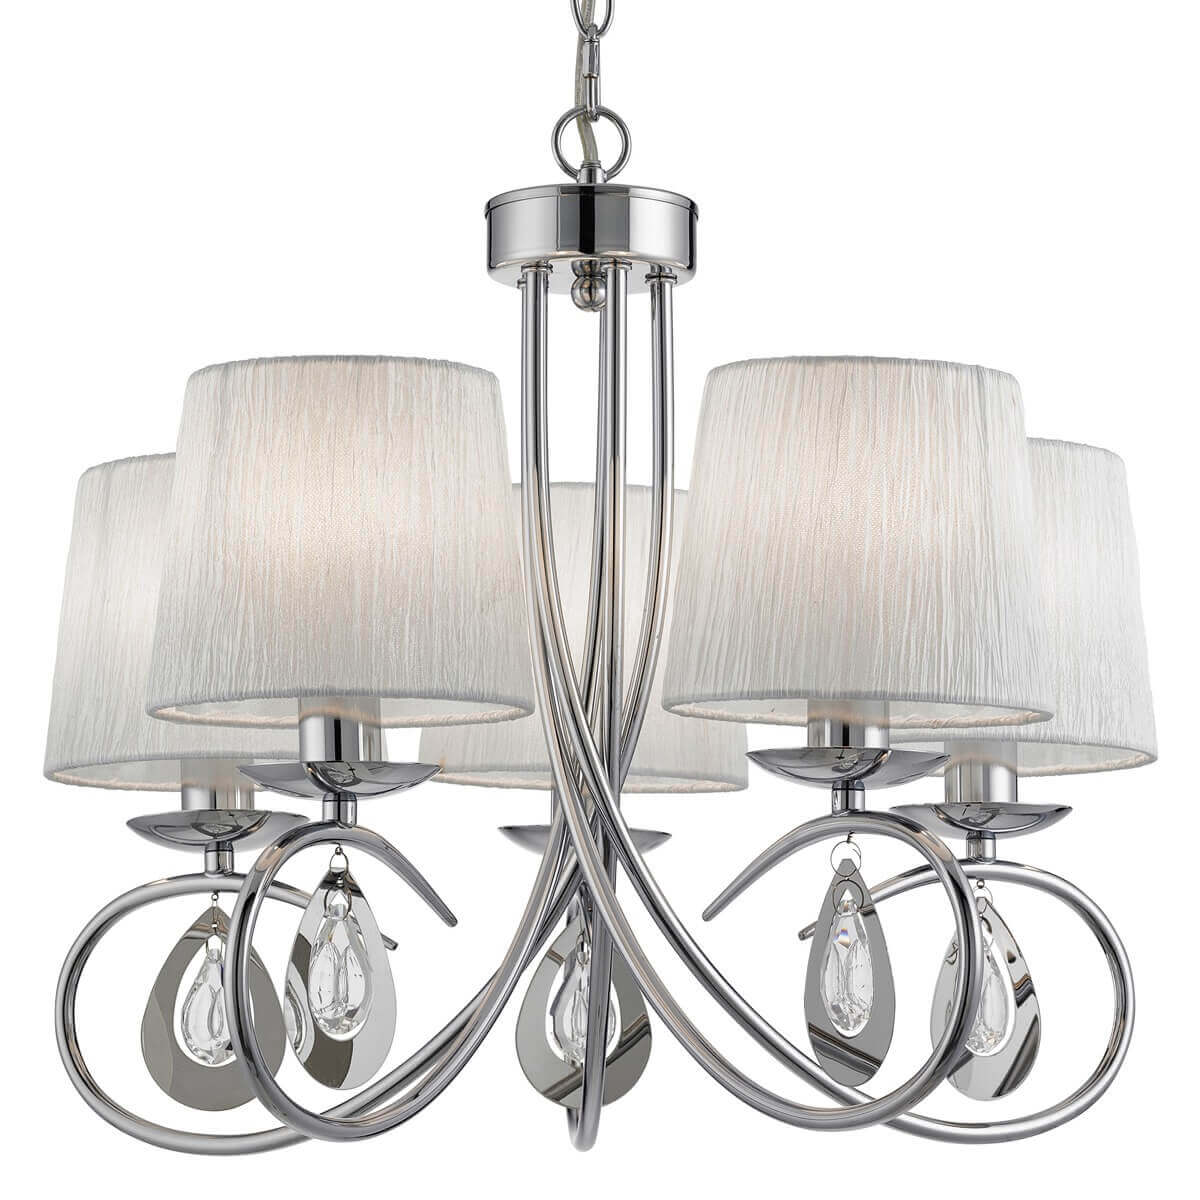 Angelique 5 Light Ceiling Chrome White Shades Clear